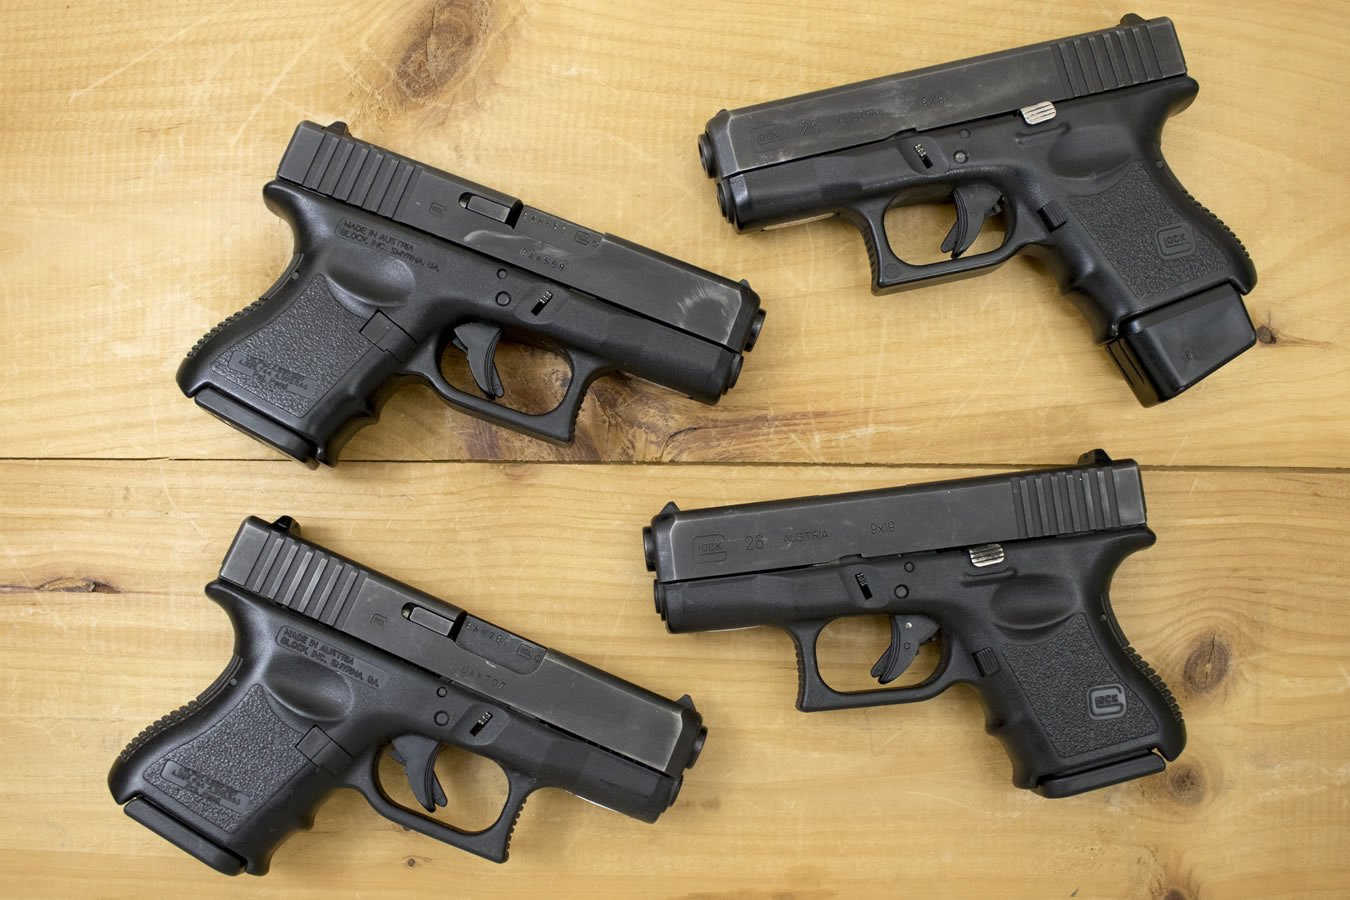 Glock 26 Gen3 9mm Police Trade-in Pistols (Fair Condition) - $339 99 (Free  S/H on Firearms)